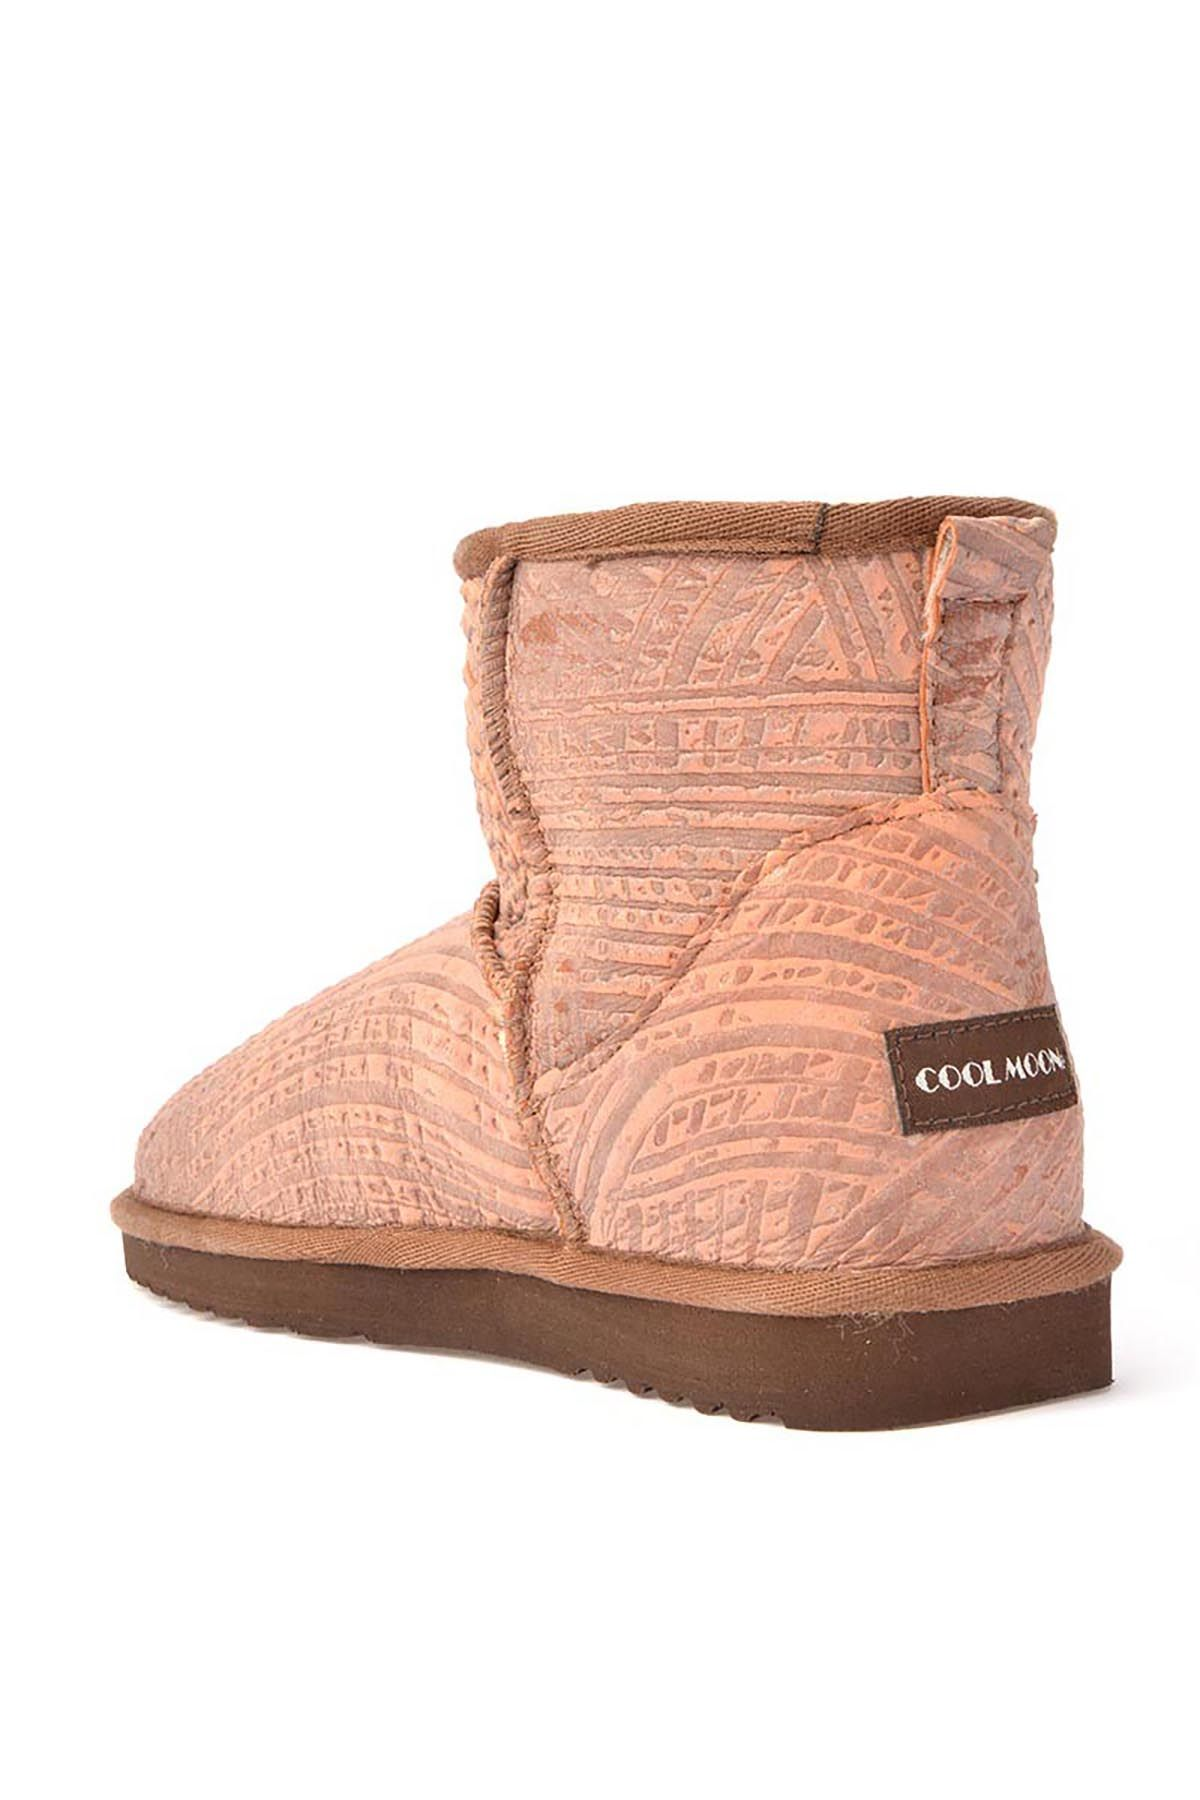 Cool Moon Patterned Women Boots From Genuine Fur 990222 Pink